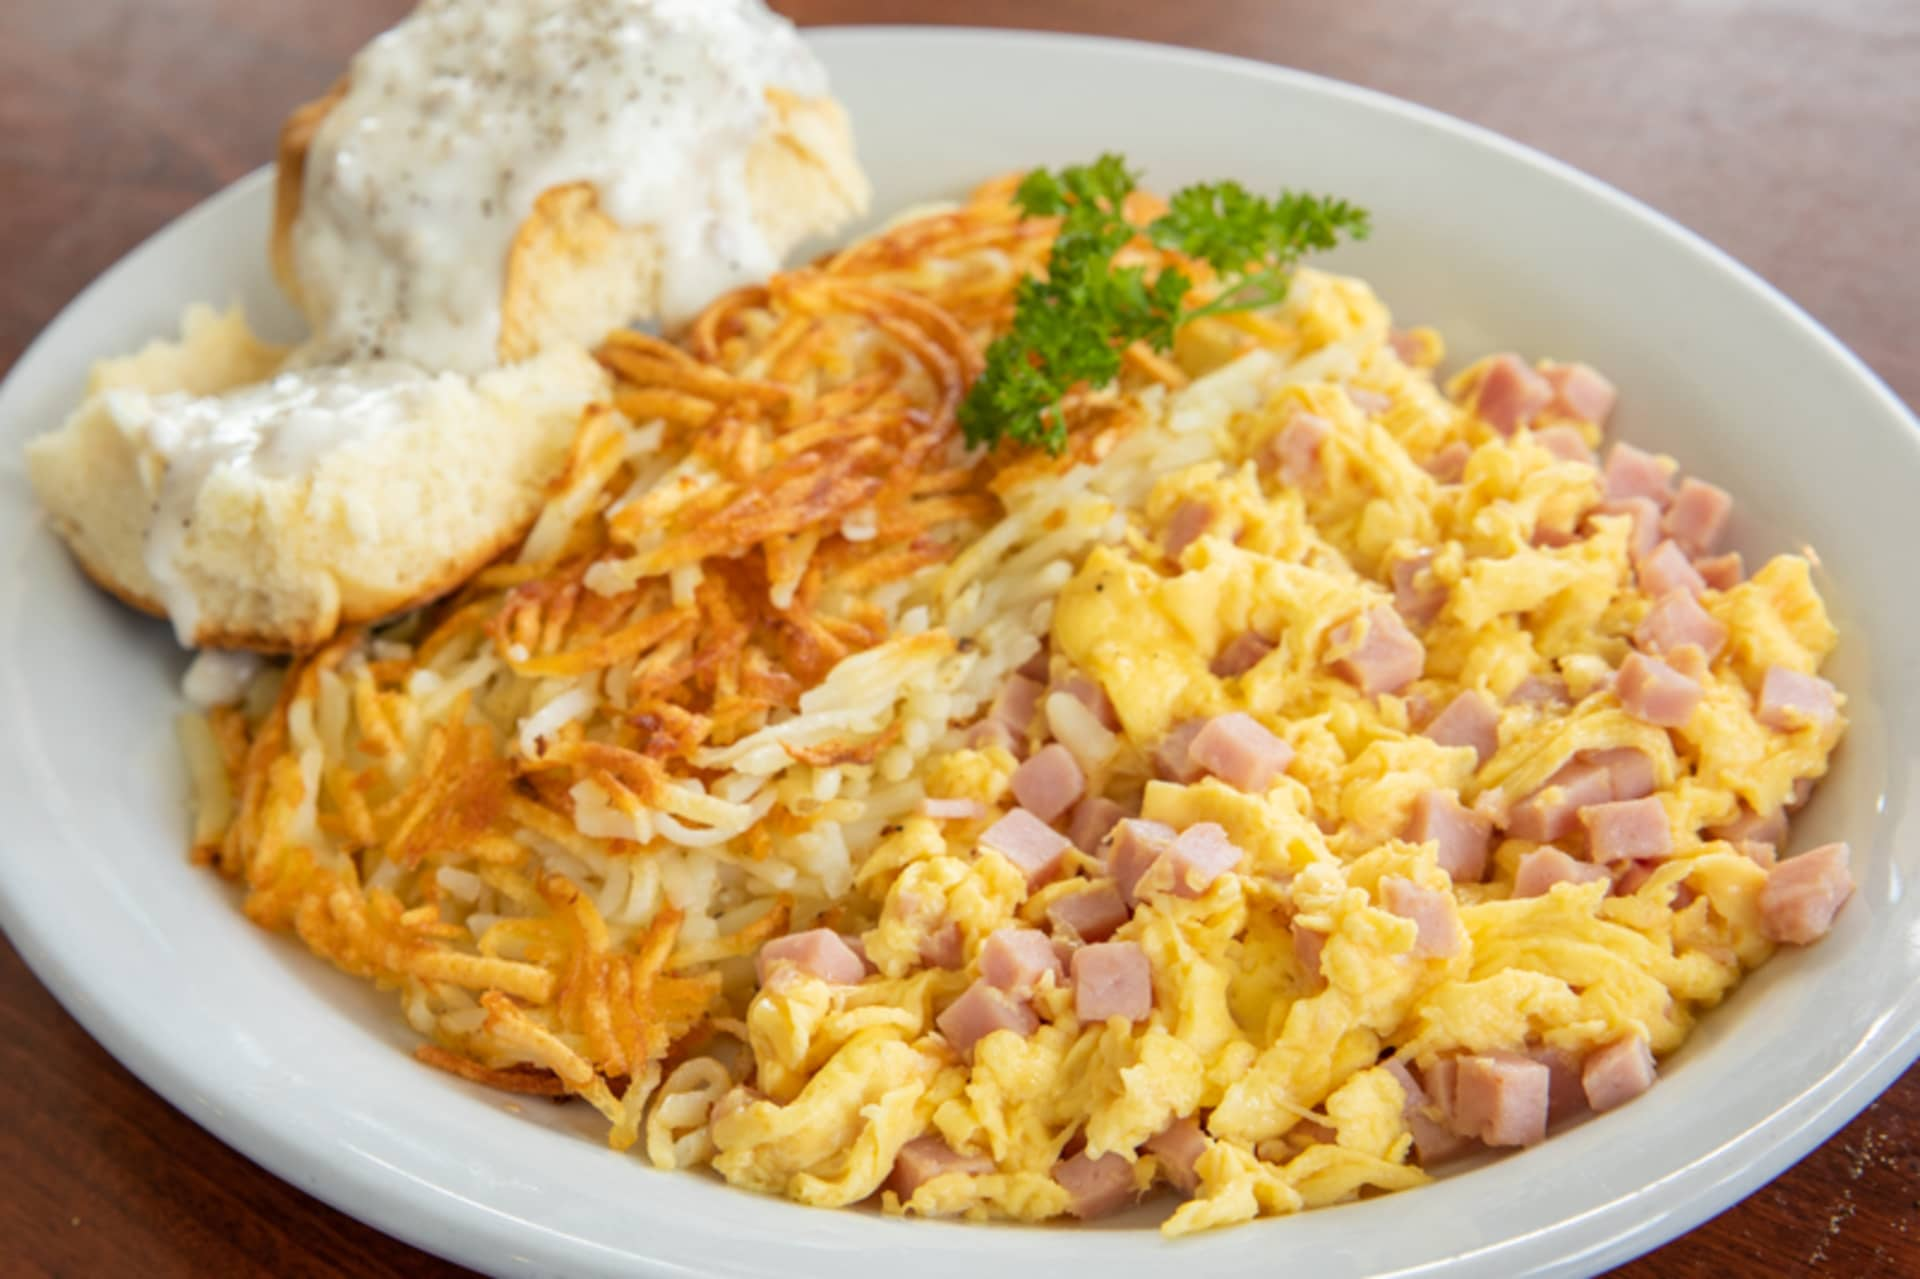 Friday - Diced Ham & Eggs Scramble